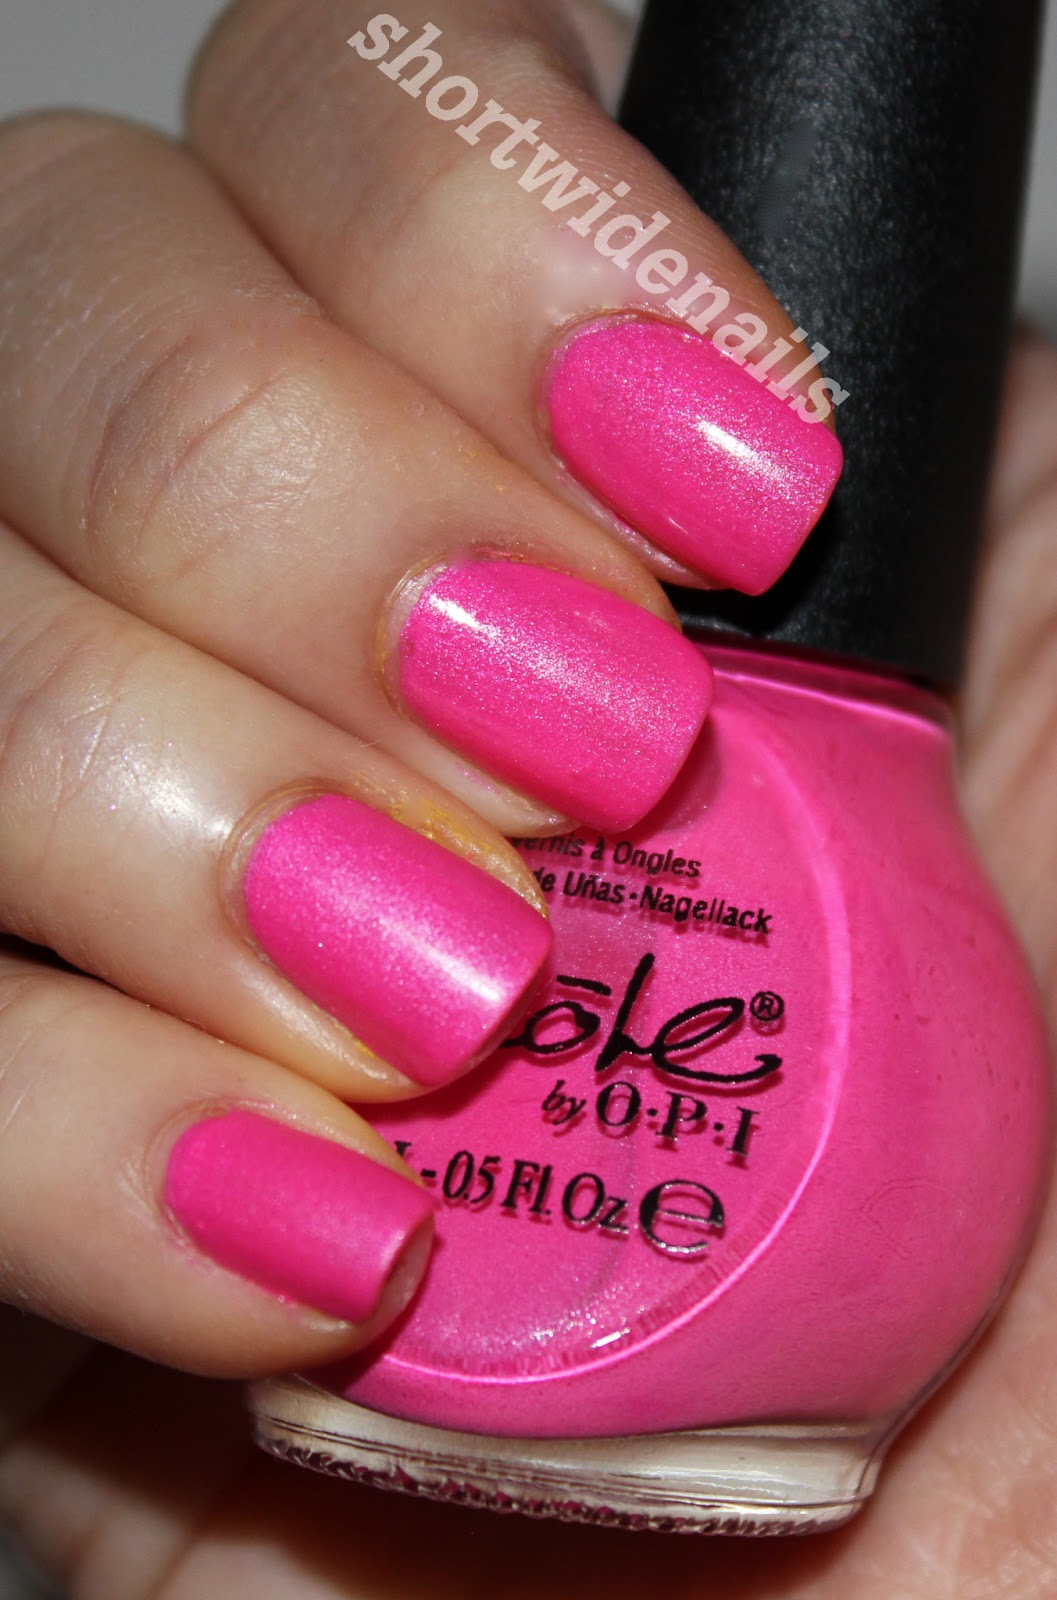 Nicole by O.P.I Spring 2013   Shorties: a nail and beauty blog